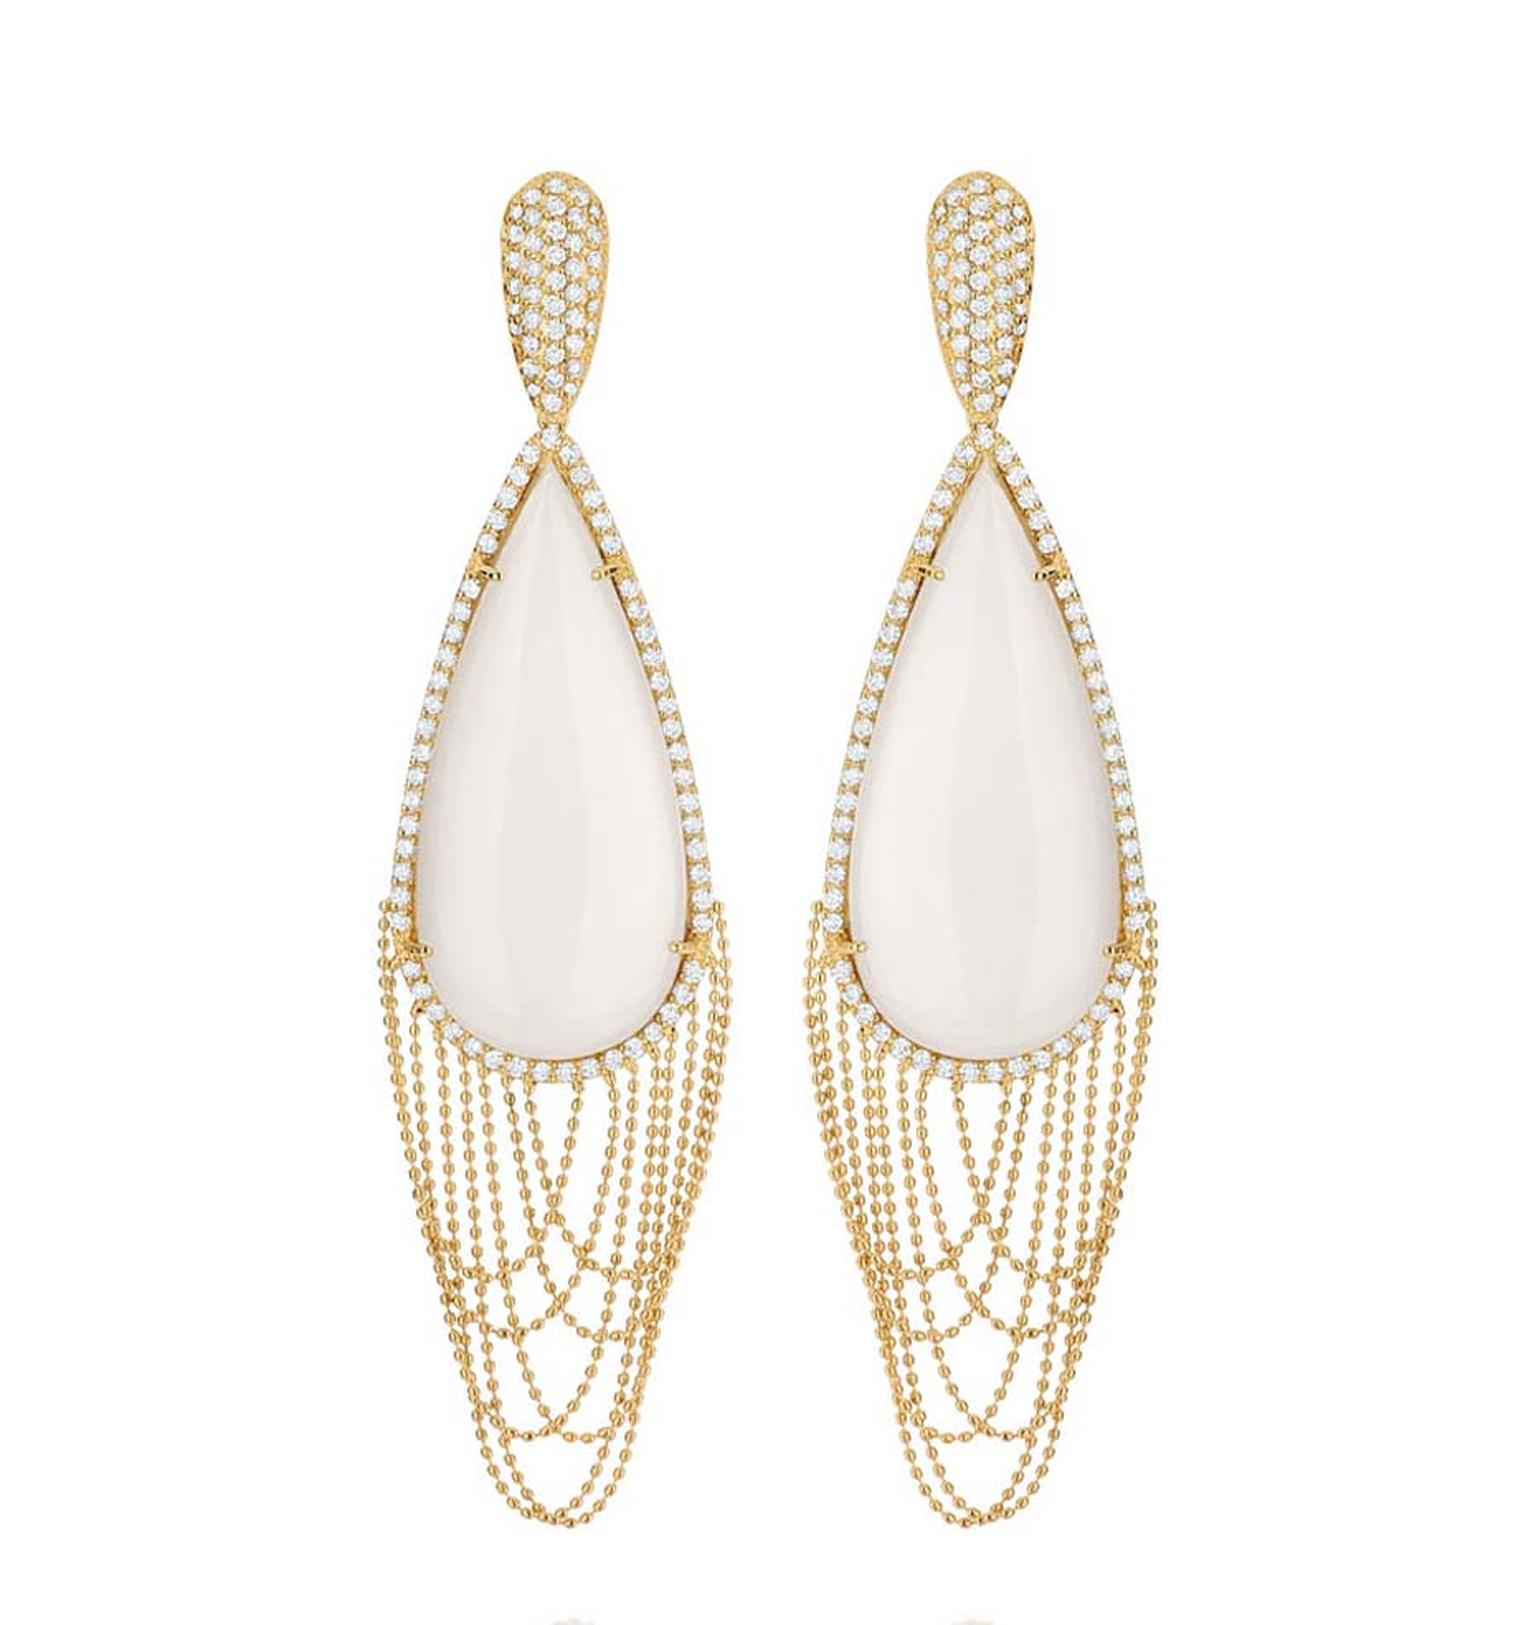 Carla Amorim Breeze earrings from the Pantone collection.